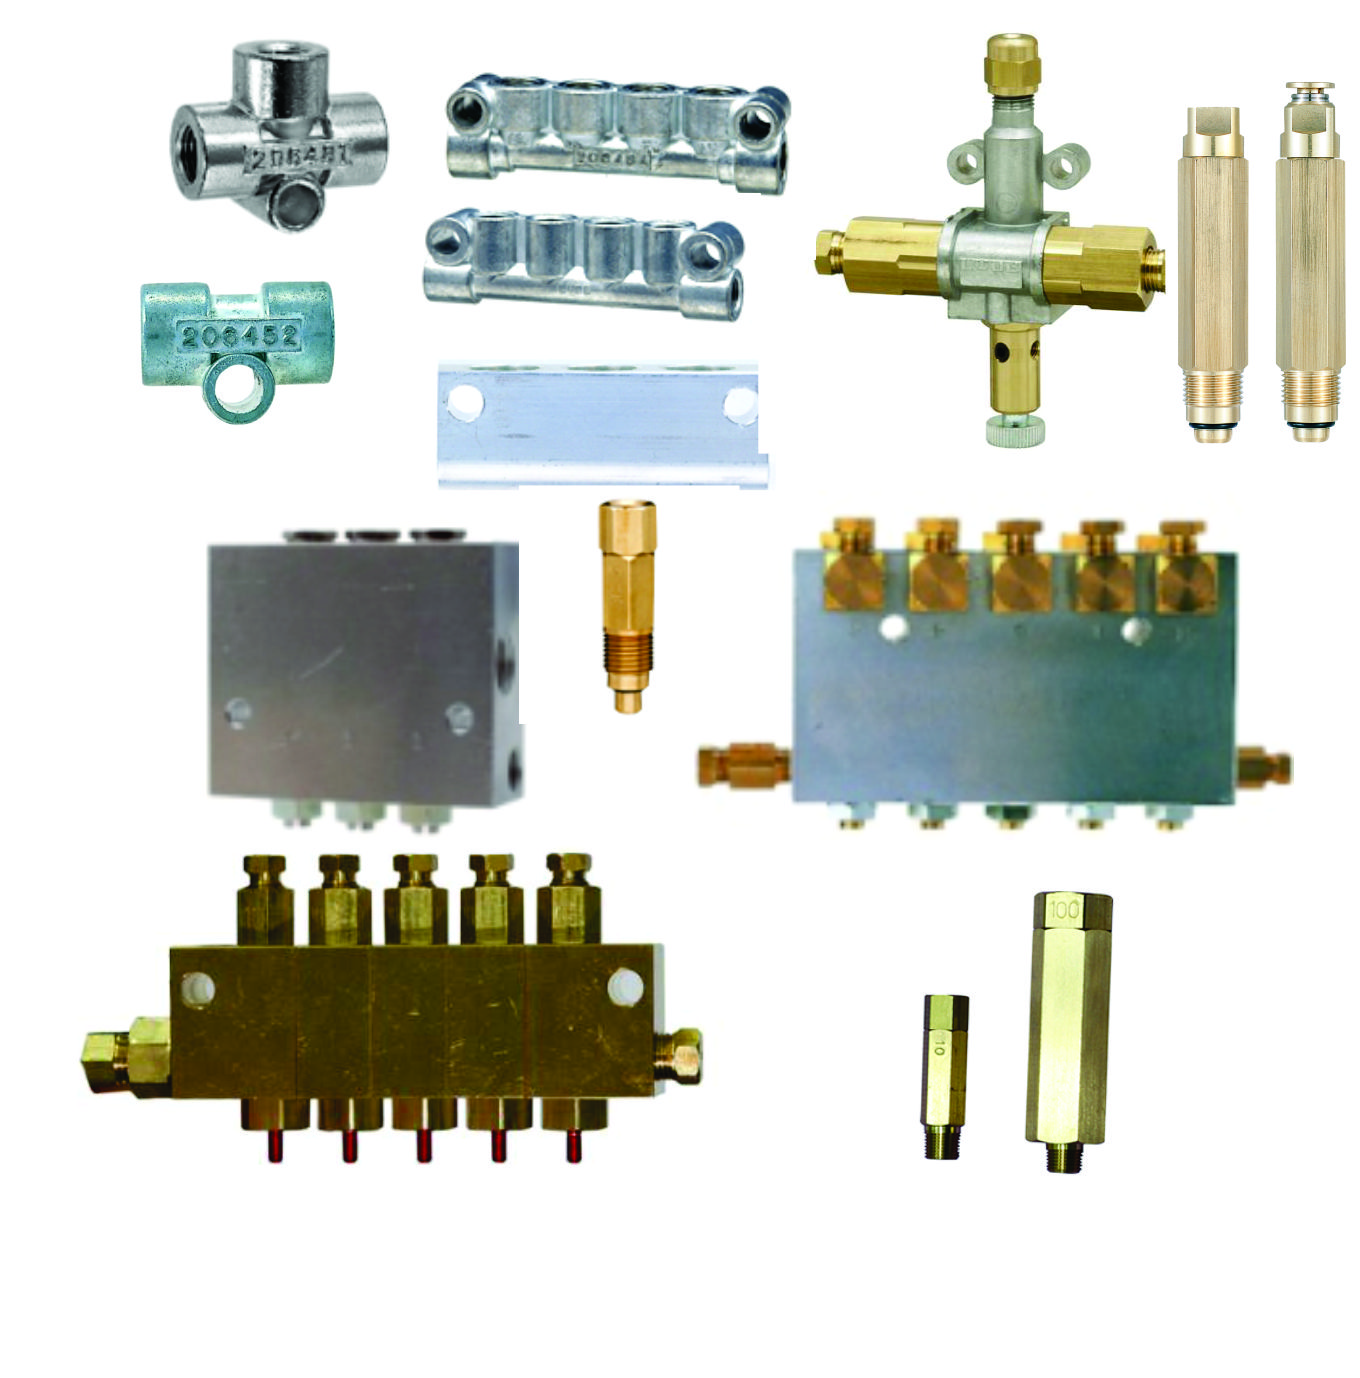 PDI Oil Valves, Manifolds, & Junctions